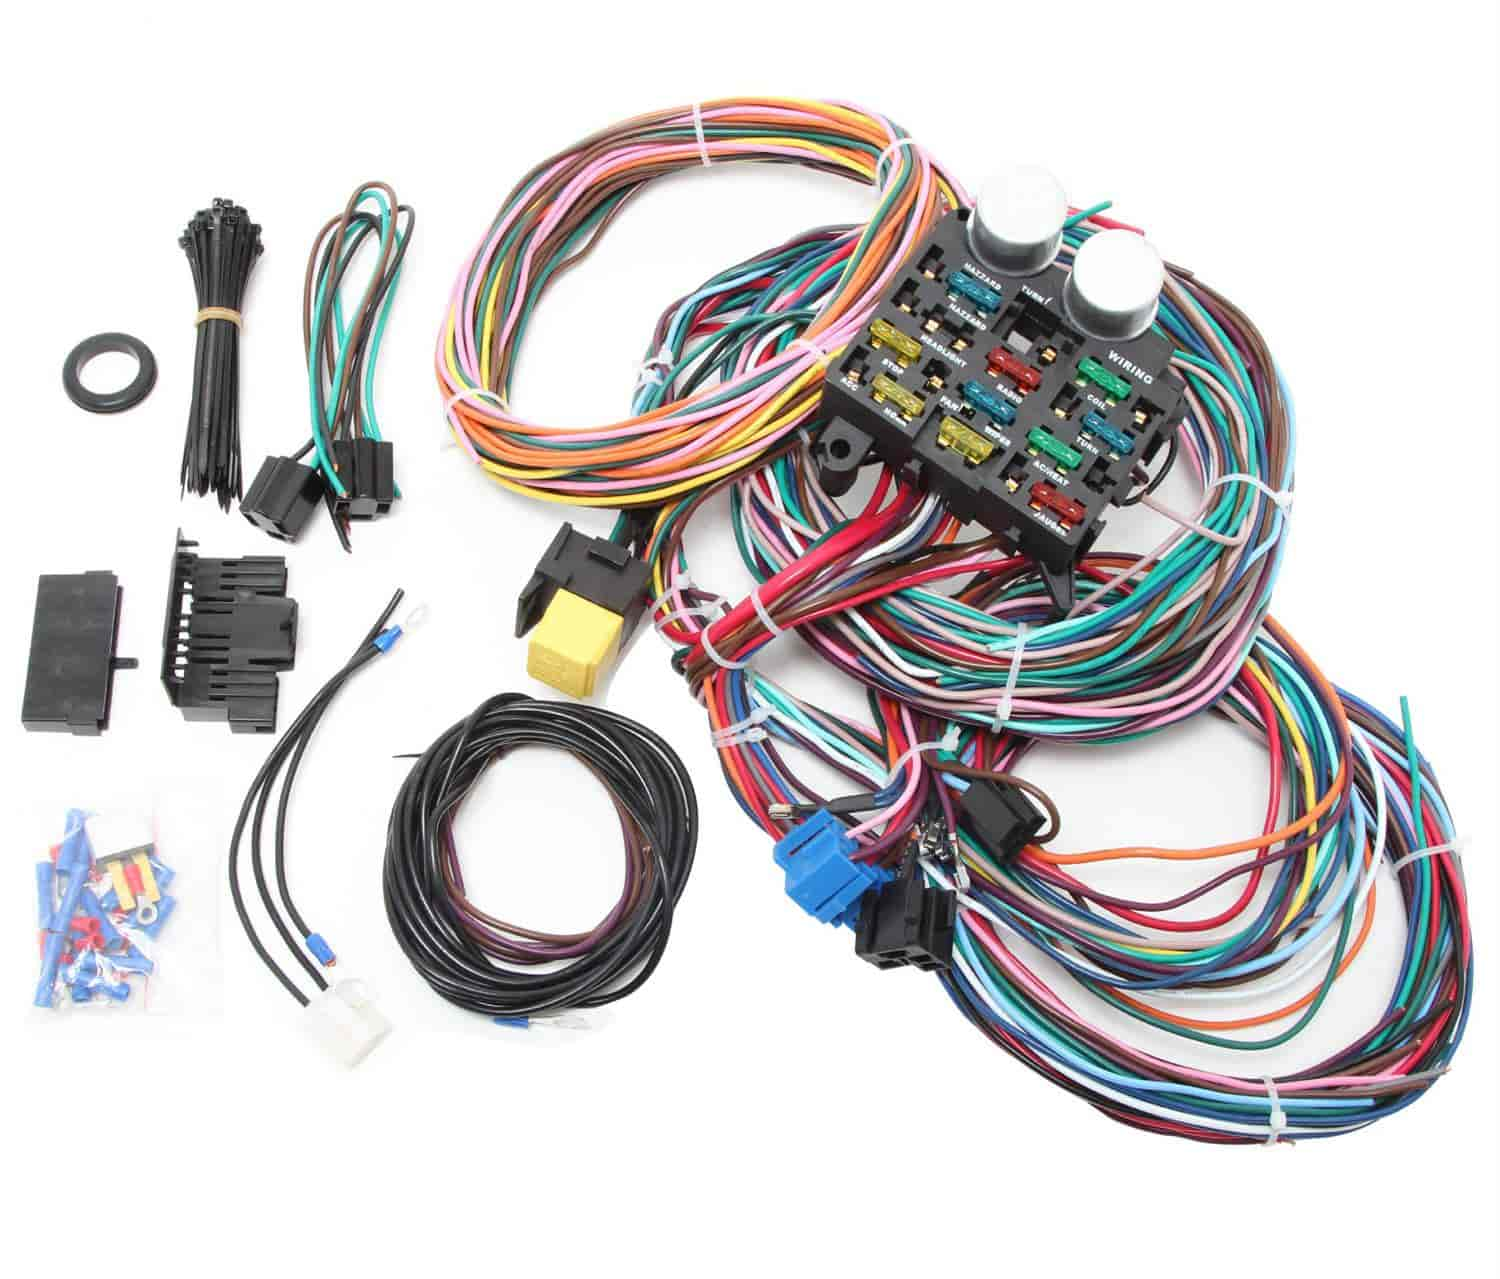 707 r1002x rpc r1002x universal 12 circuit wire harness kit jegs jegs universal wiring harness at reclaimingppi.co